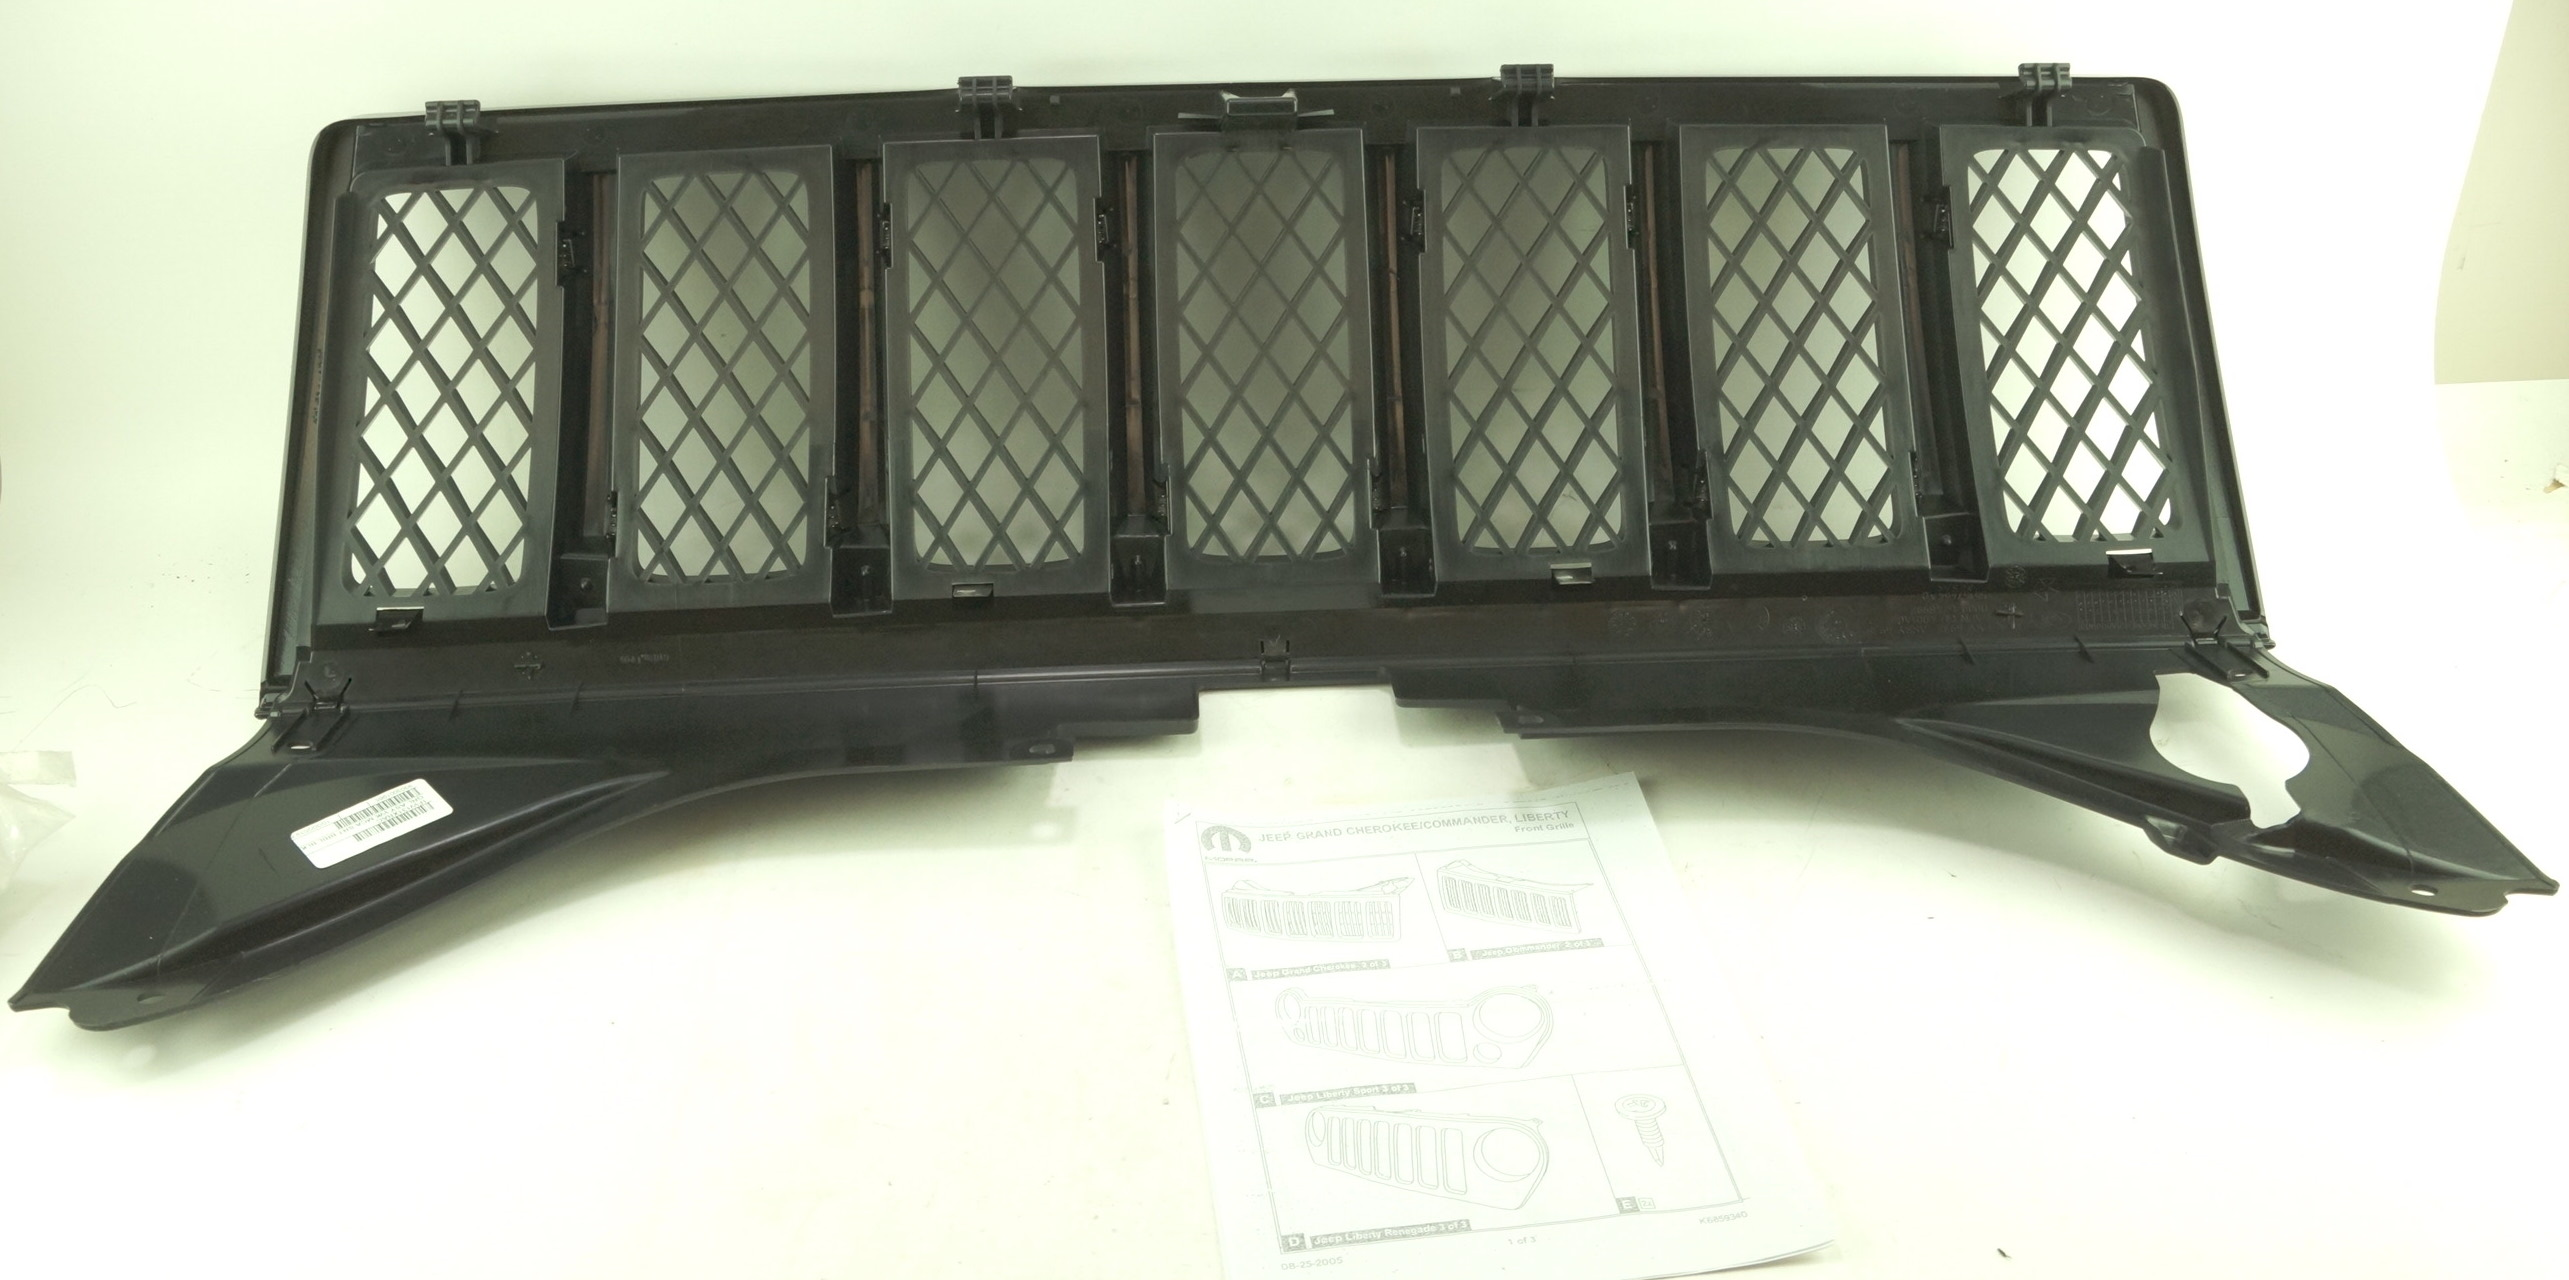 New OEM 1FW131XR-AC 08-10 Jeep Grand Cherokee Black Radiator Grille Assembly - image 9